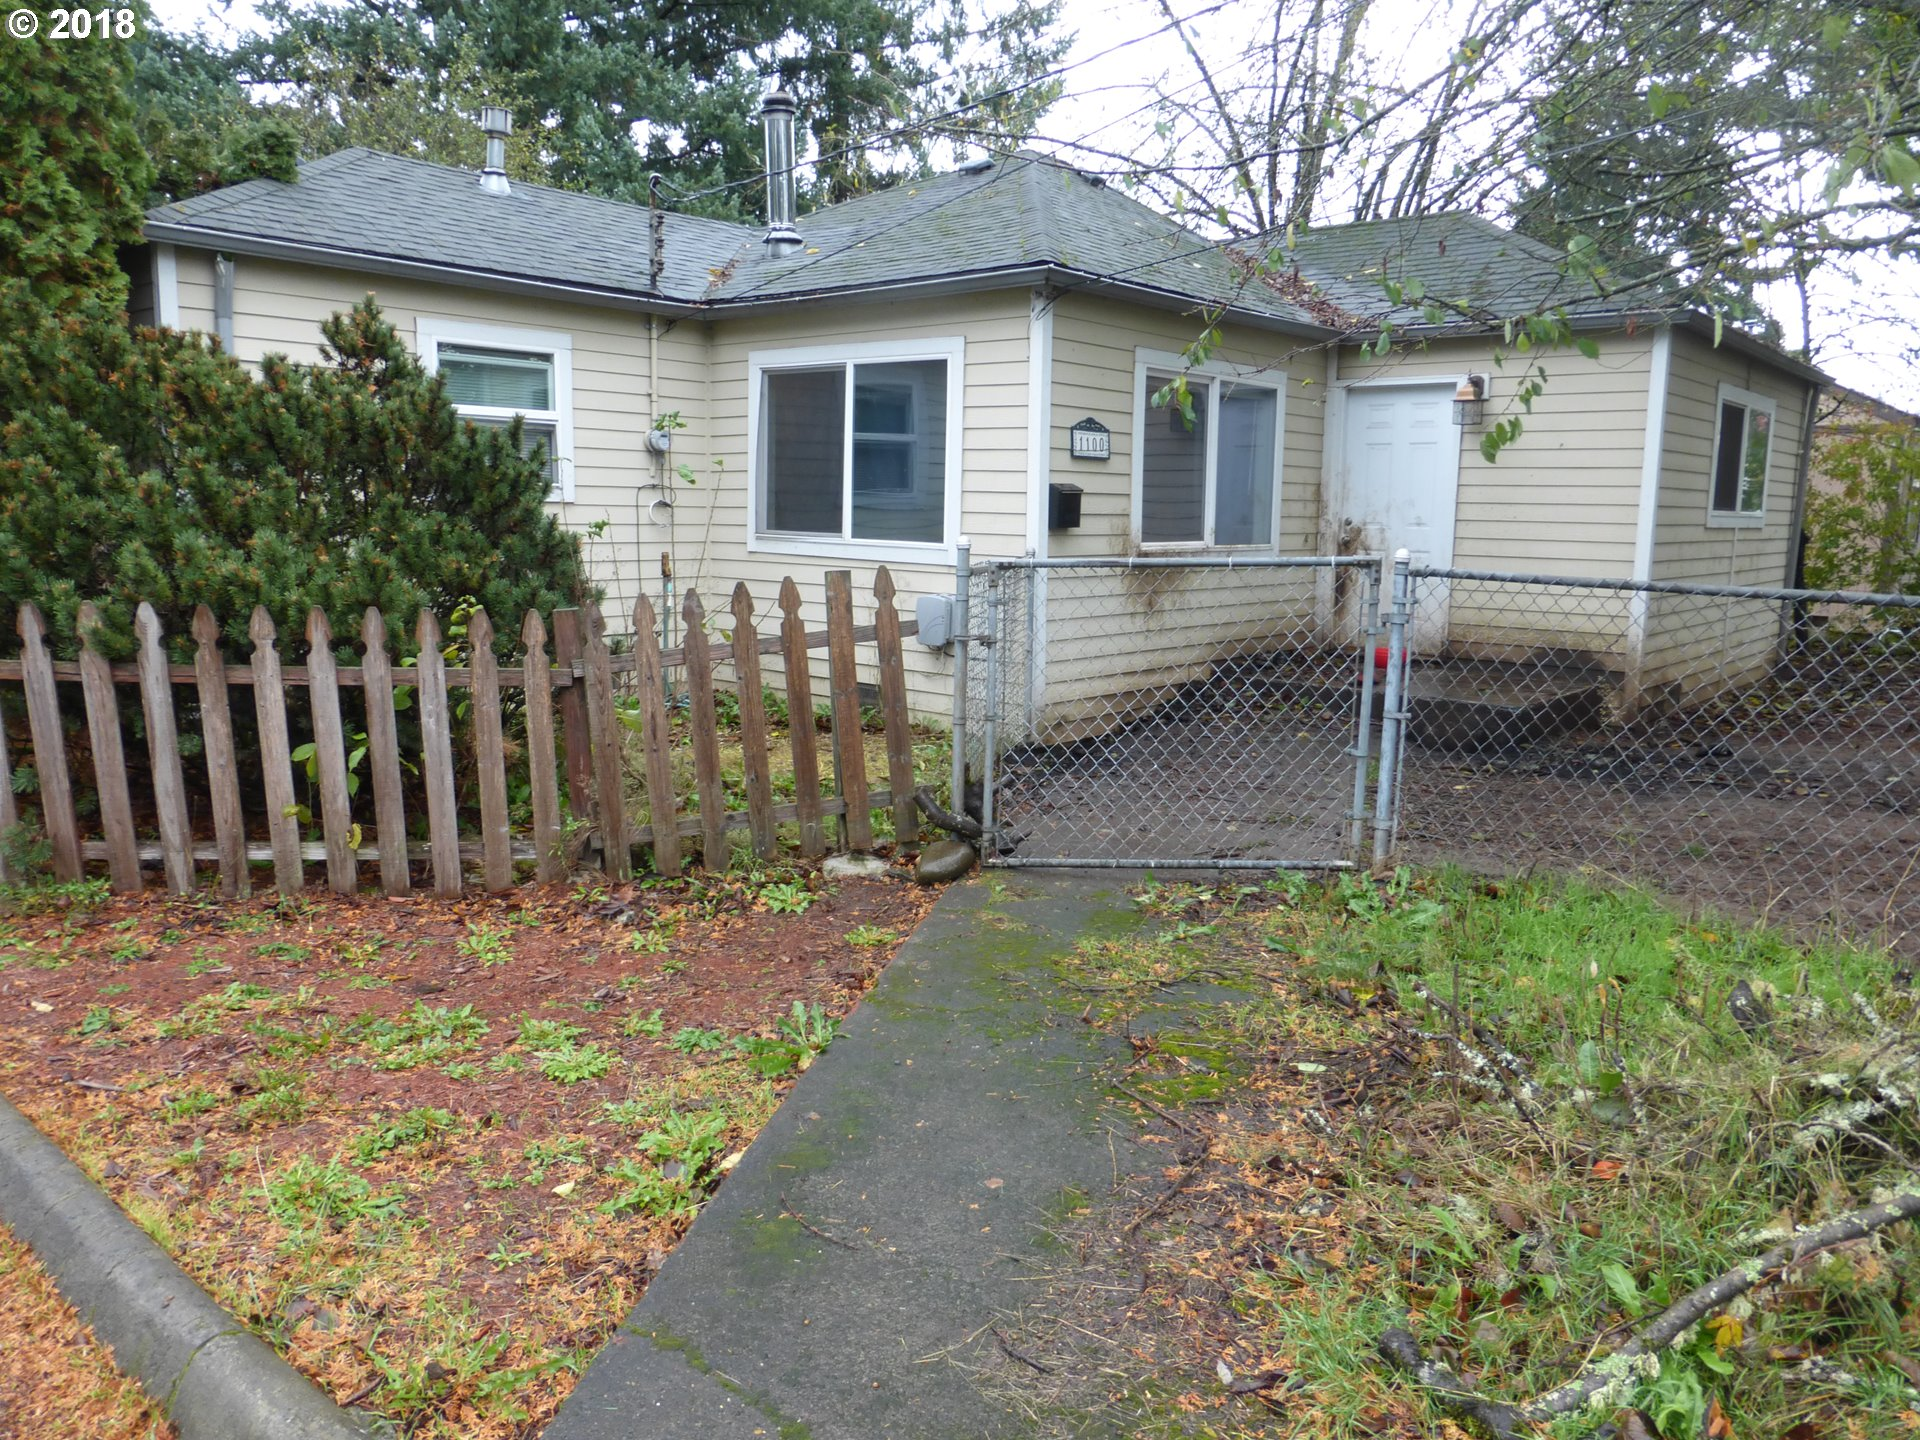 968 sq. ft 2 bedrooms 1 bathrooms  House , Portland, OR